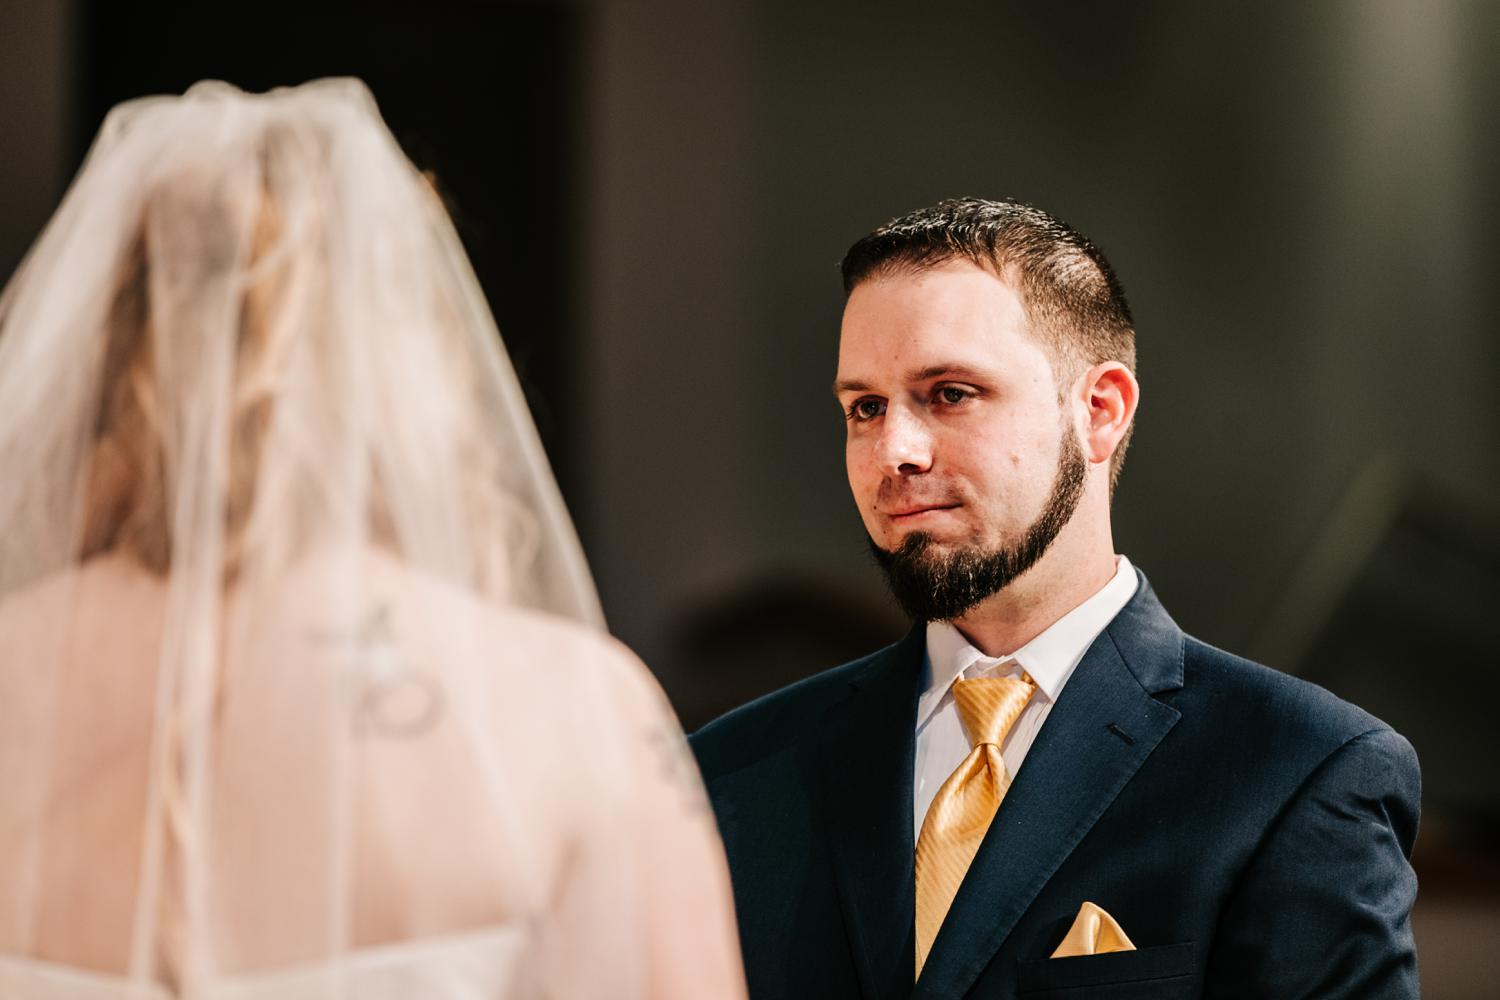 Groom's expression as he looks at bride